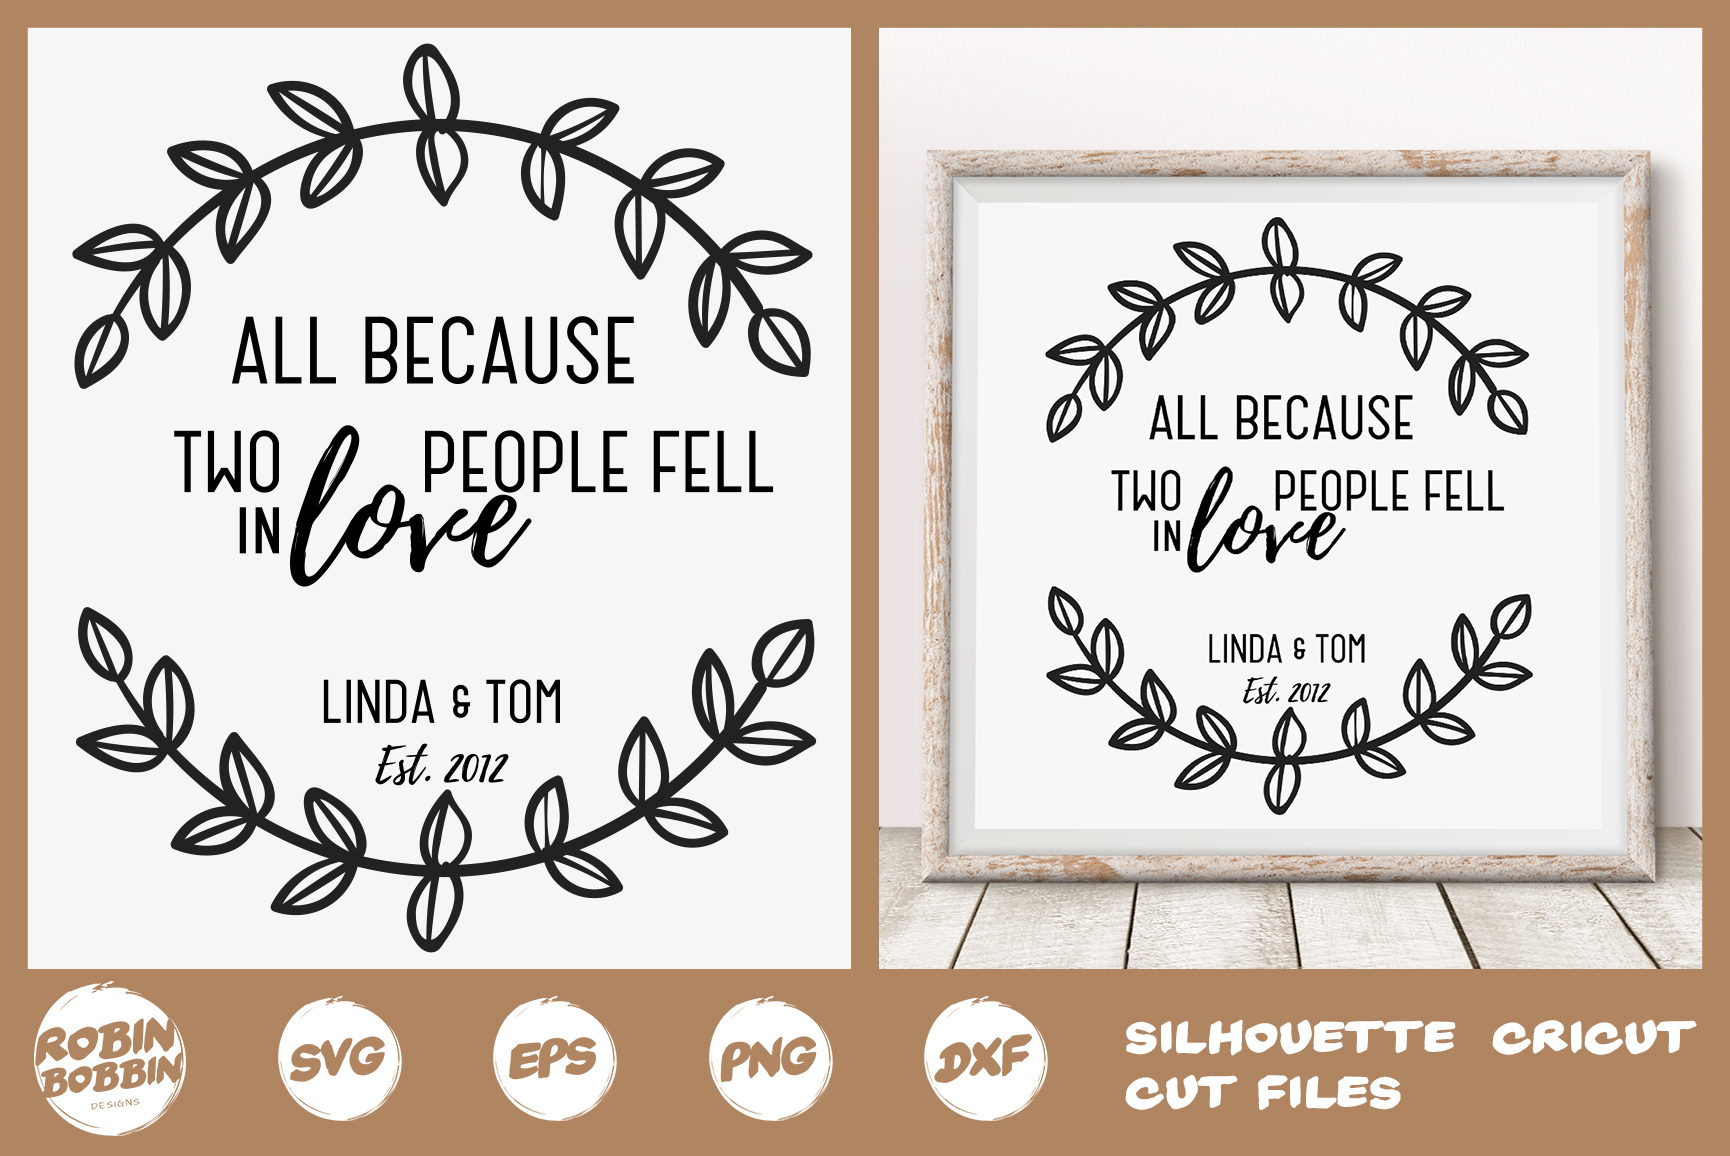 Download Free Personalized Family Poster All Because Two People Fell In Love for Cricut Explore, Silhouette and other cutting machines.